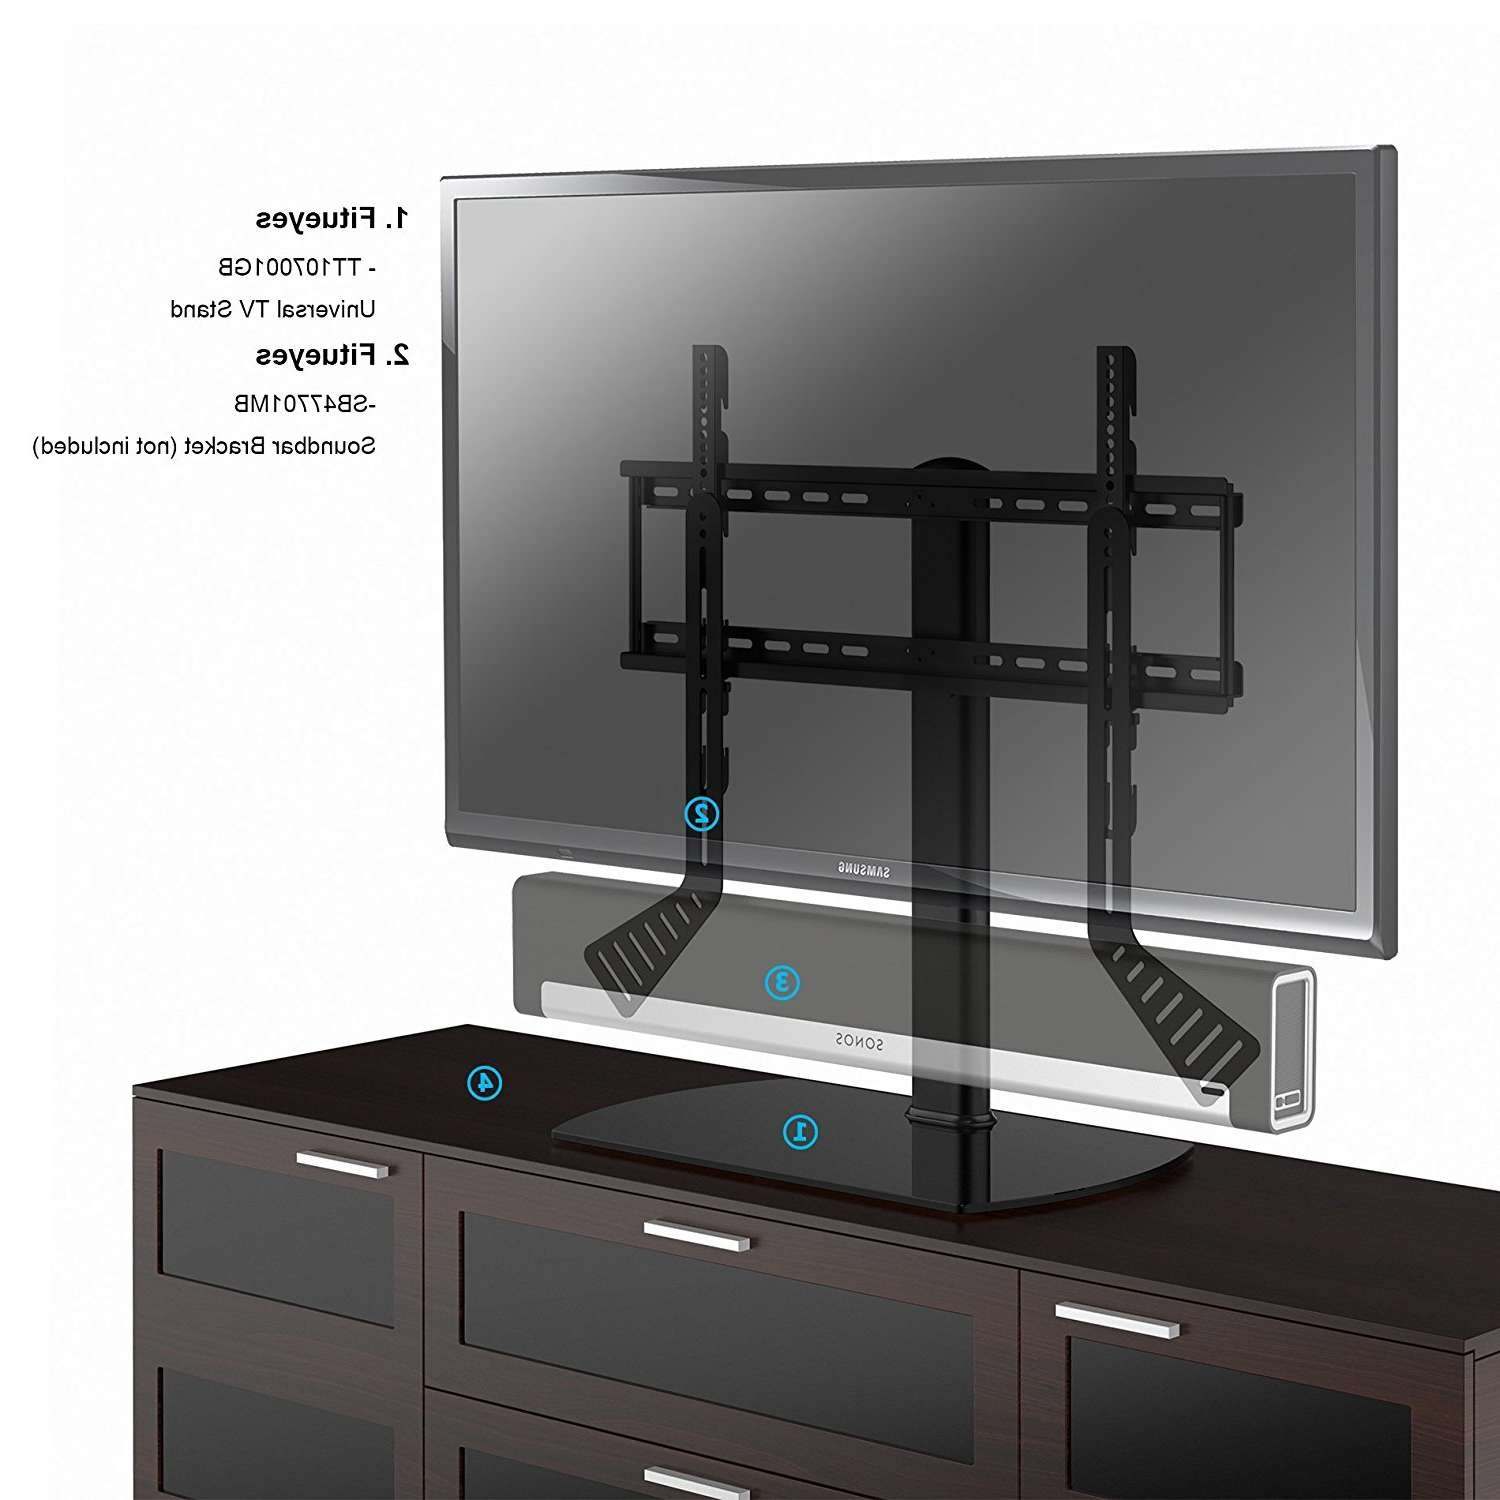 Fitueyes Universal Tabletop Tv Stand With Mount For 27 32 42 45 50 Intended For Sonos Tv Stands (View 4 of 15)